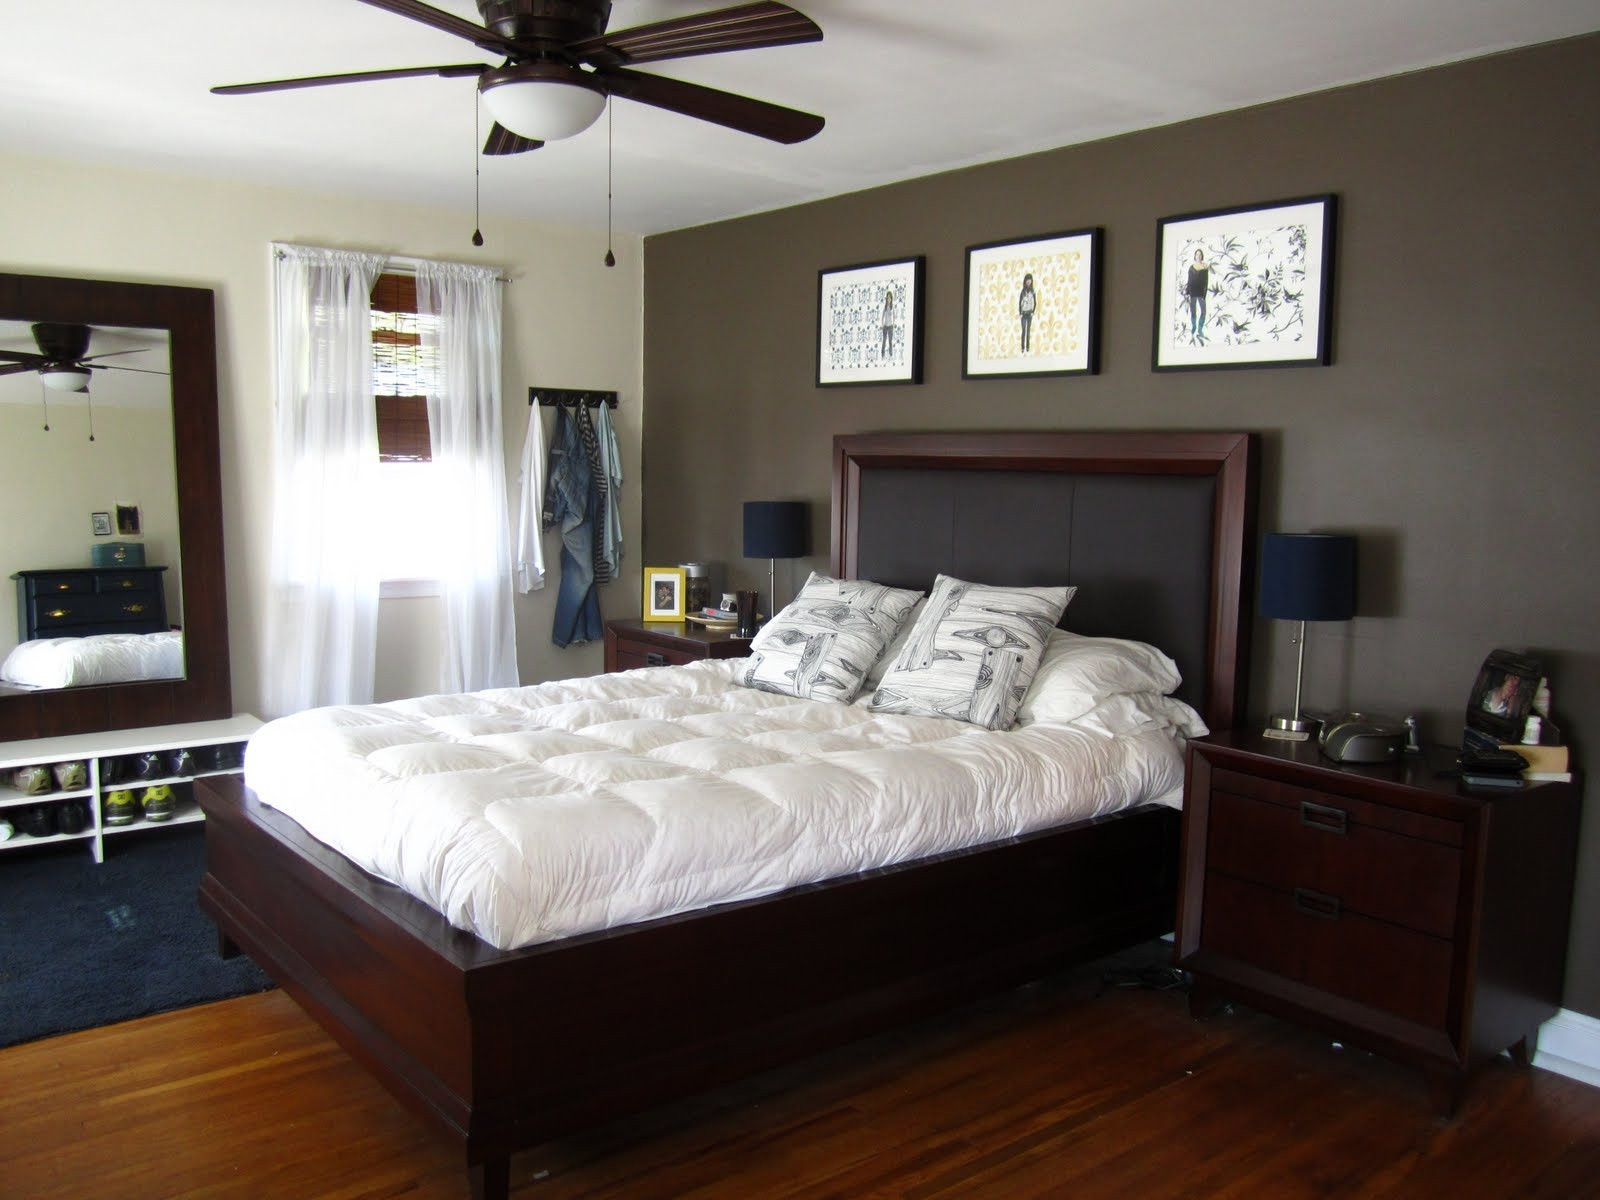 Best ideas about Accent Wall In Bedroom . Save or Pin Bedroom Wallpaper Accent Wall 8 Decor Ideas Now.